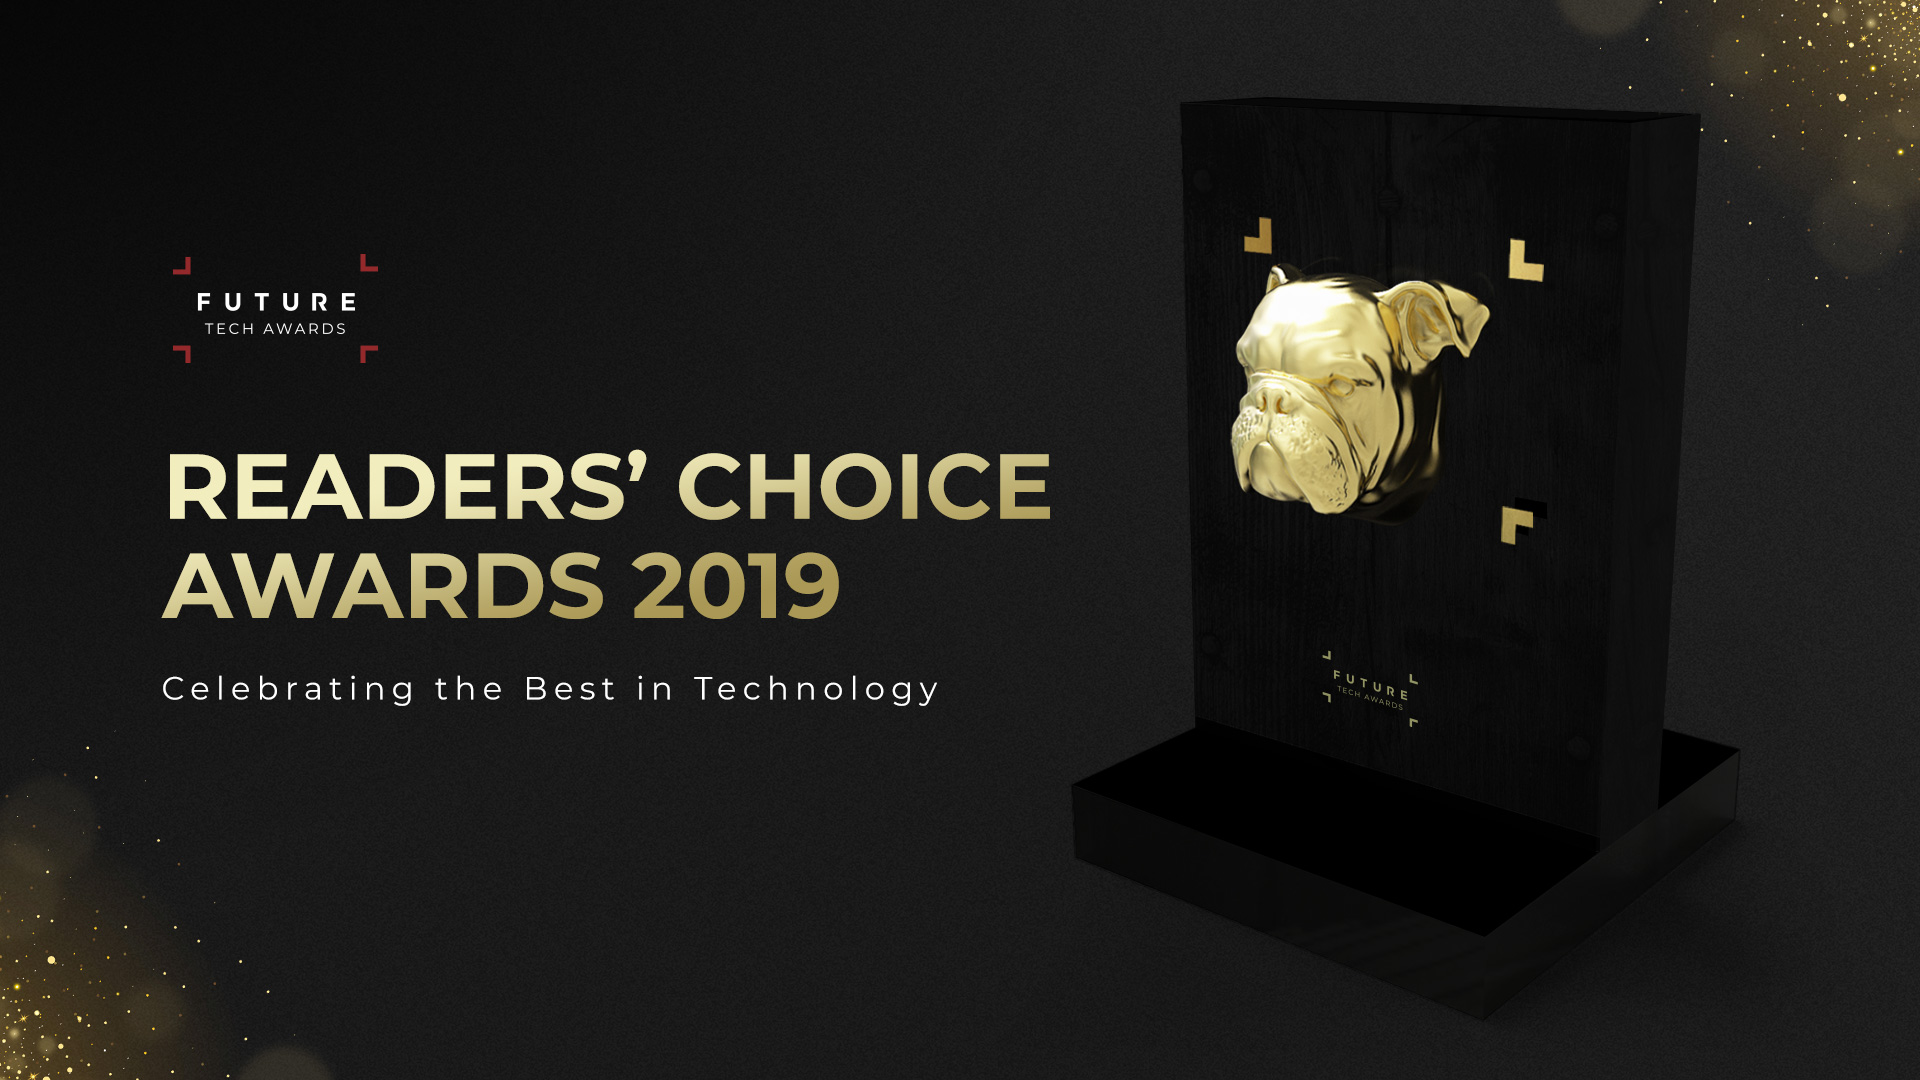 Vote in the Future Tech Awards and win an iPhone 11, Galaxy Note 10 or XPS 13 laptop